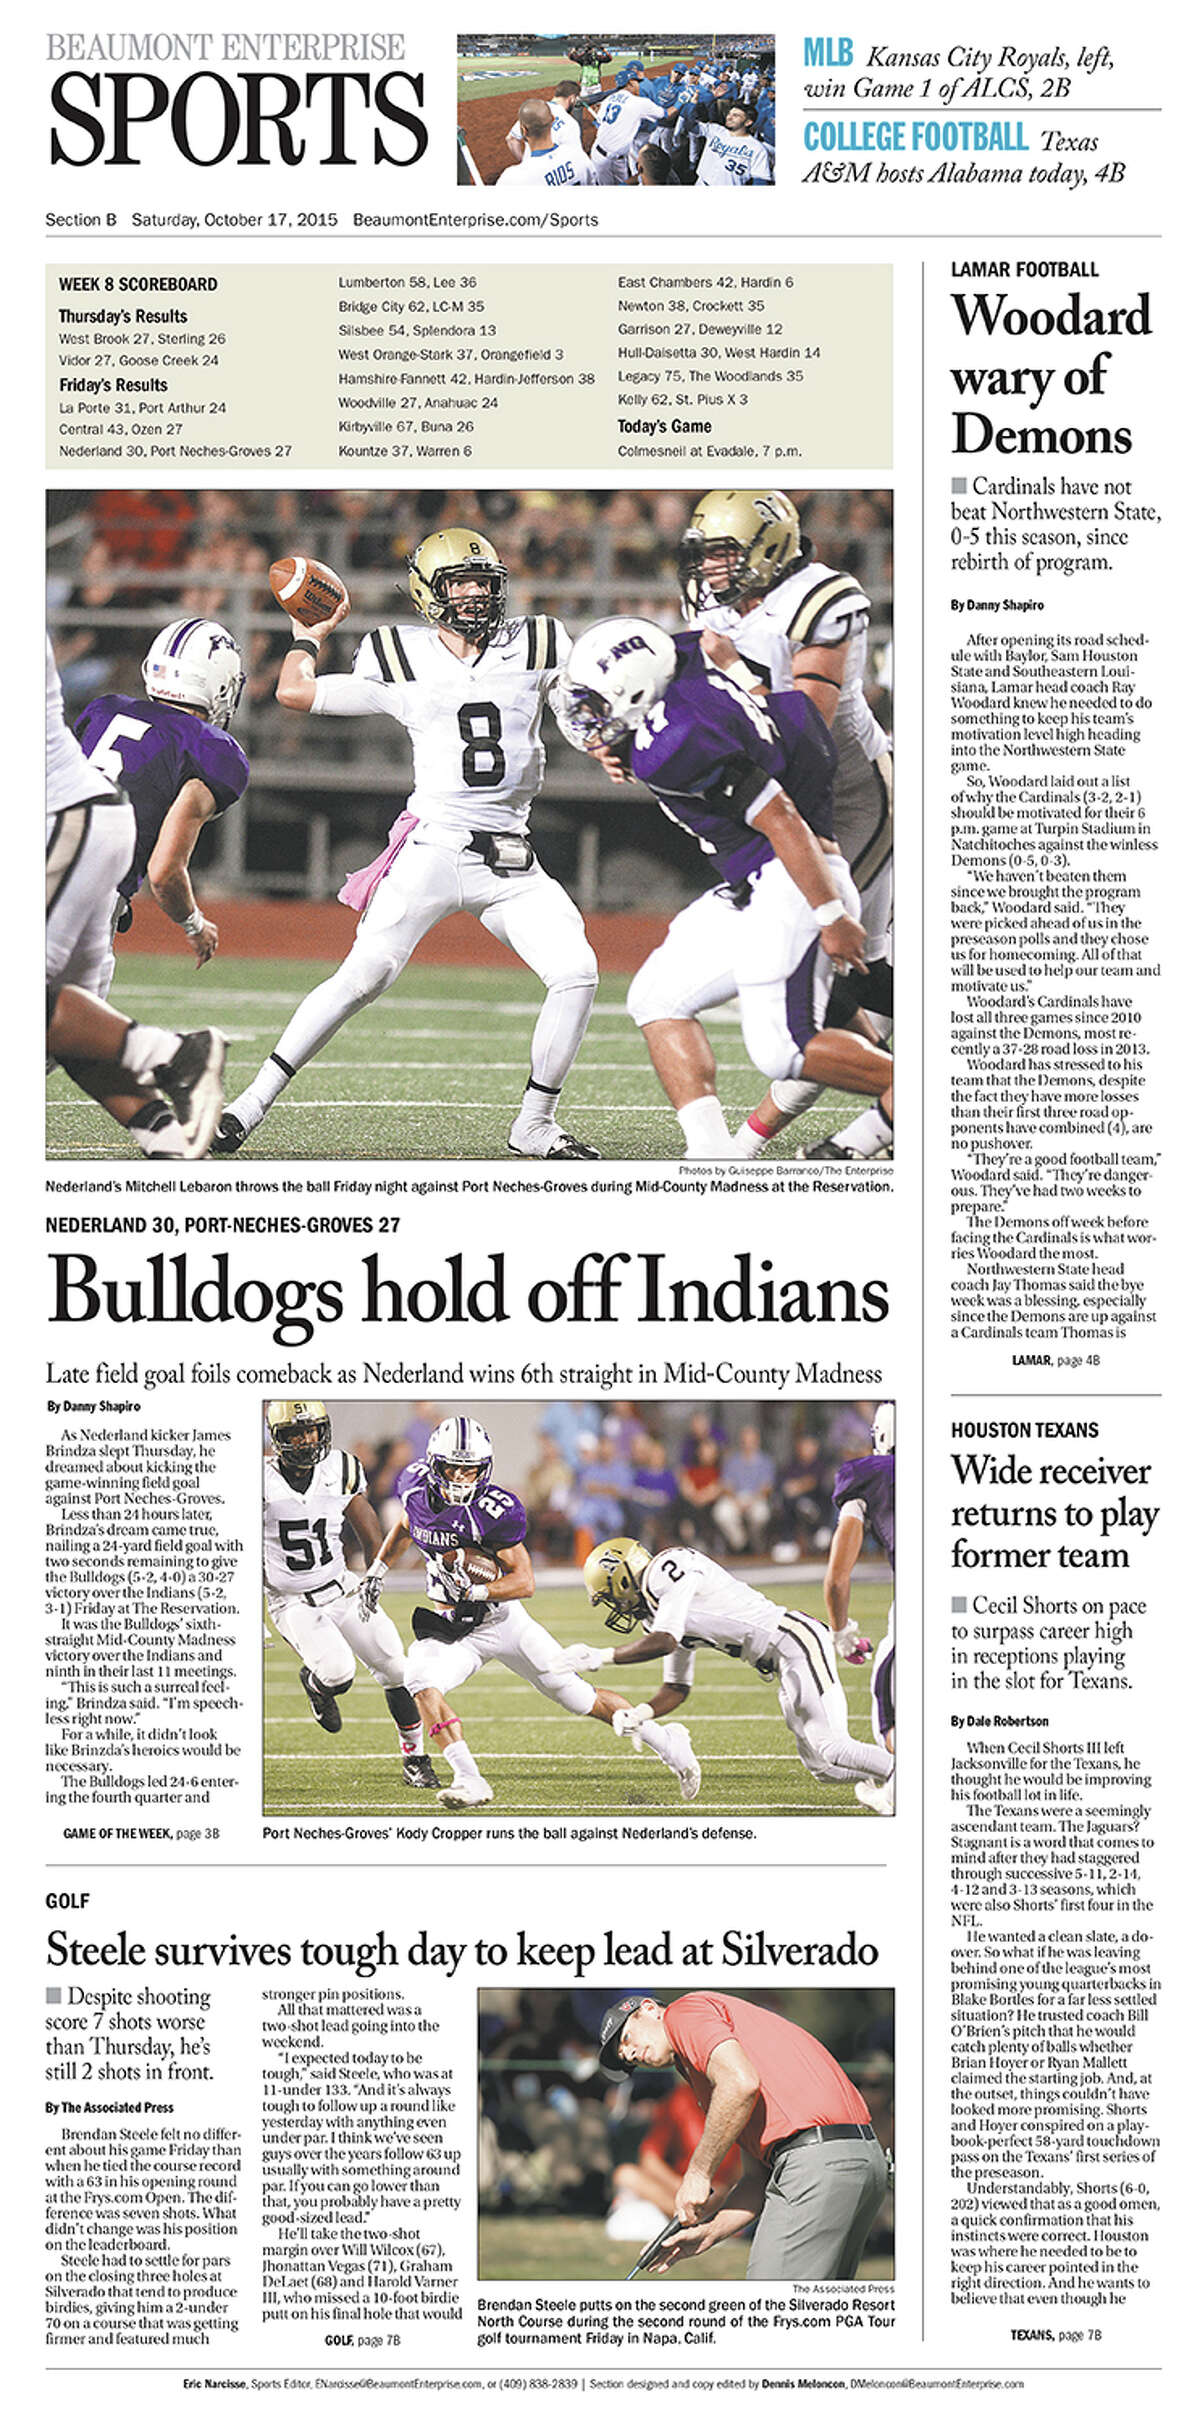 High School Football: 2015 Mid-County Madness sports cover. Nederland 30, PN-G 27.